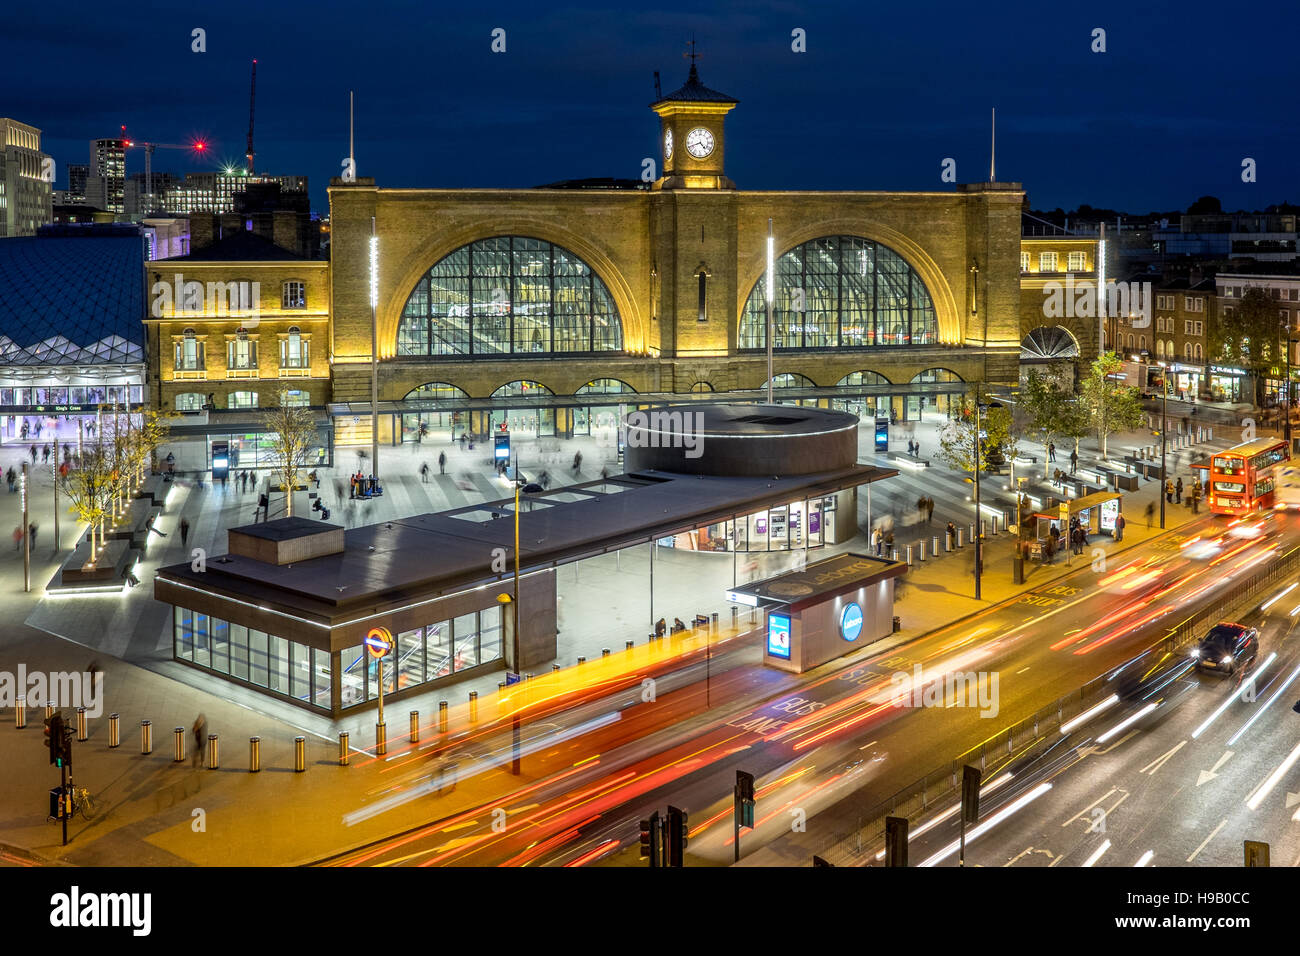 King's Kings Cross station national railway at night dusk sunset in London with busses bus tube underground - Stock Image